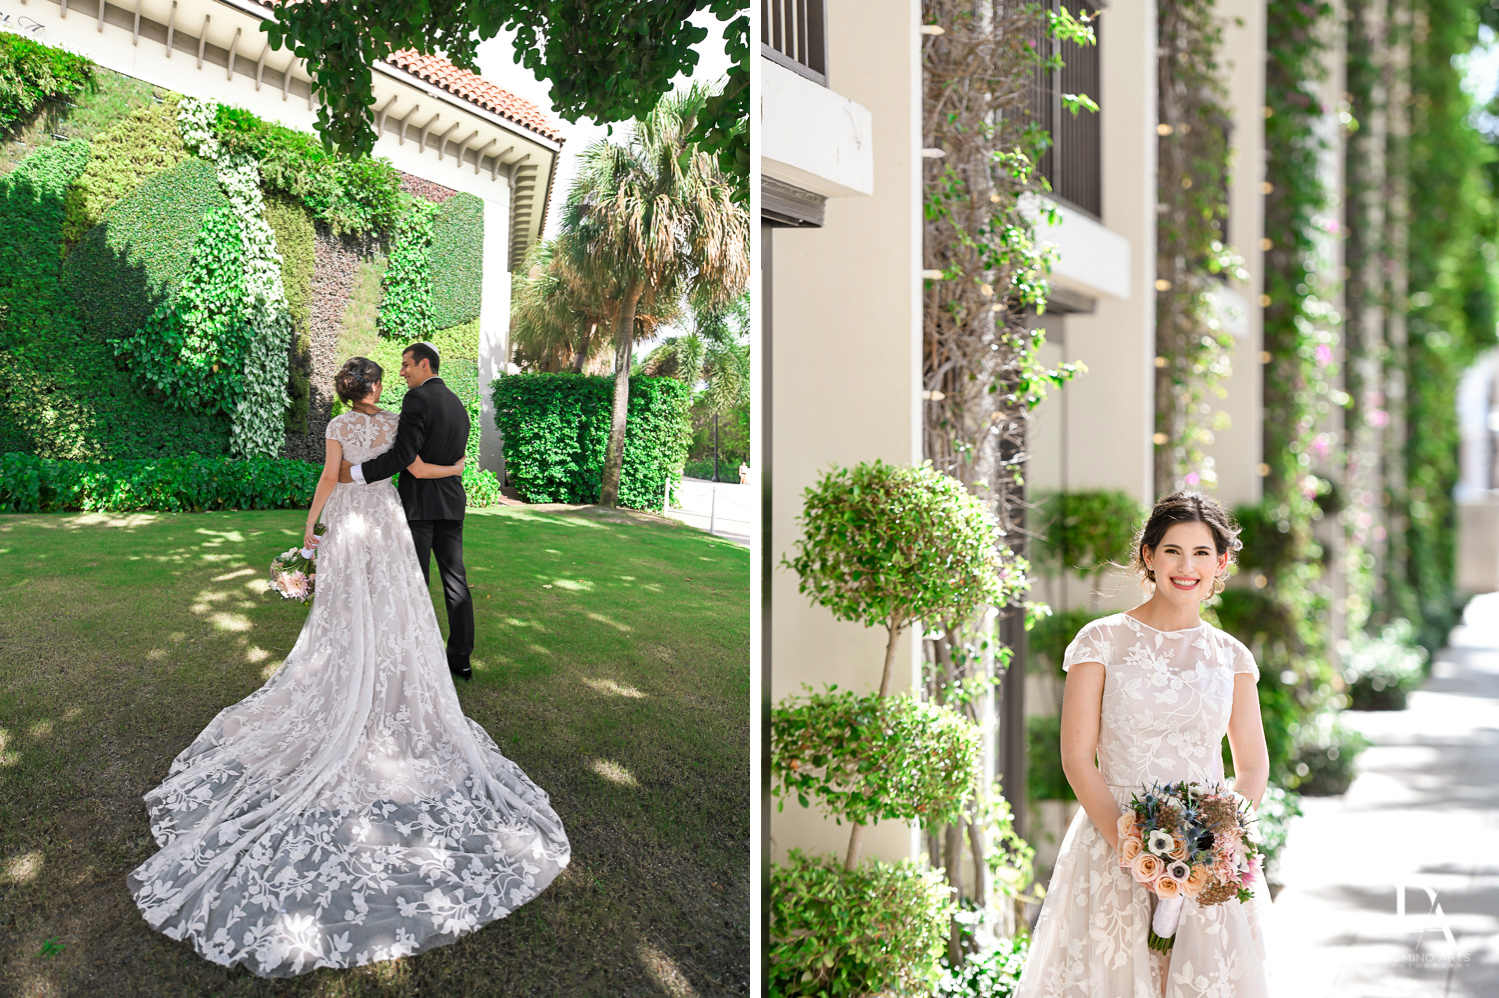 sunny day at Luxury Summer Wedding at The Colony Hotel Palm Beach by Domino Arts Photography